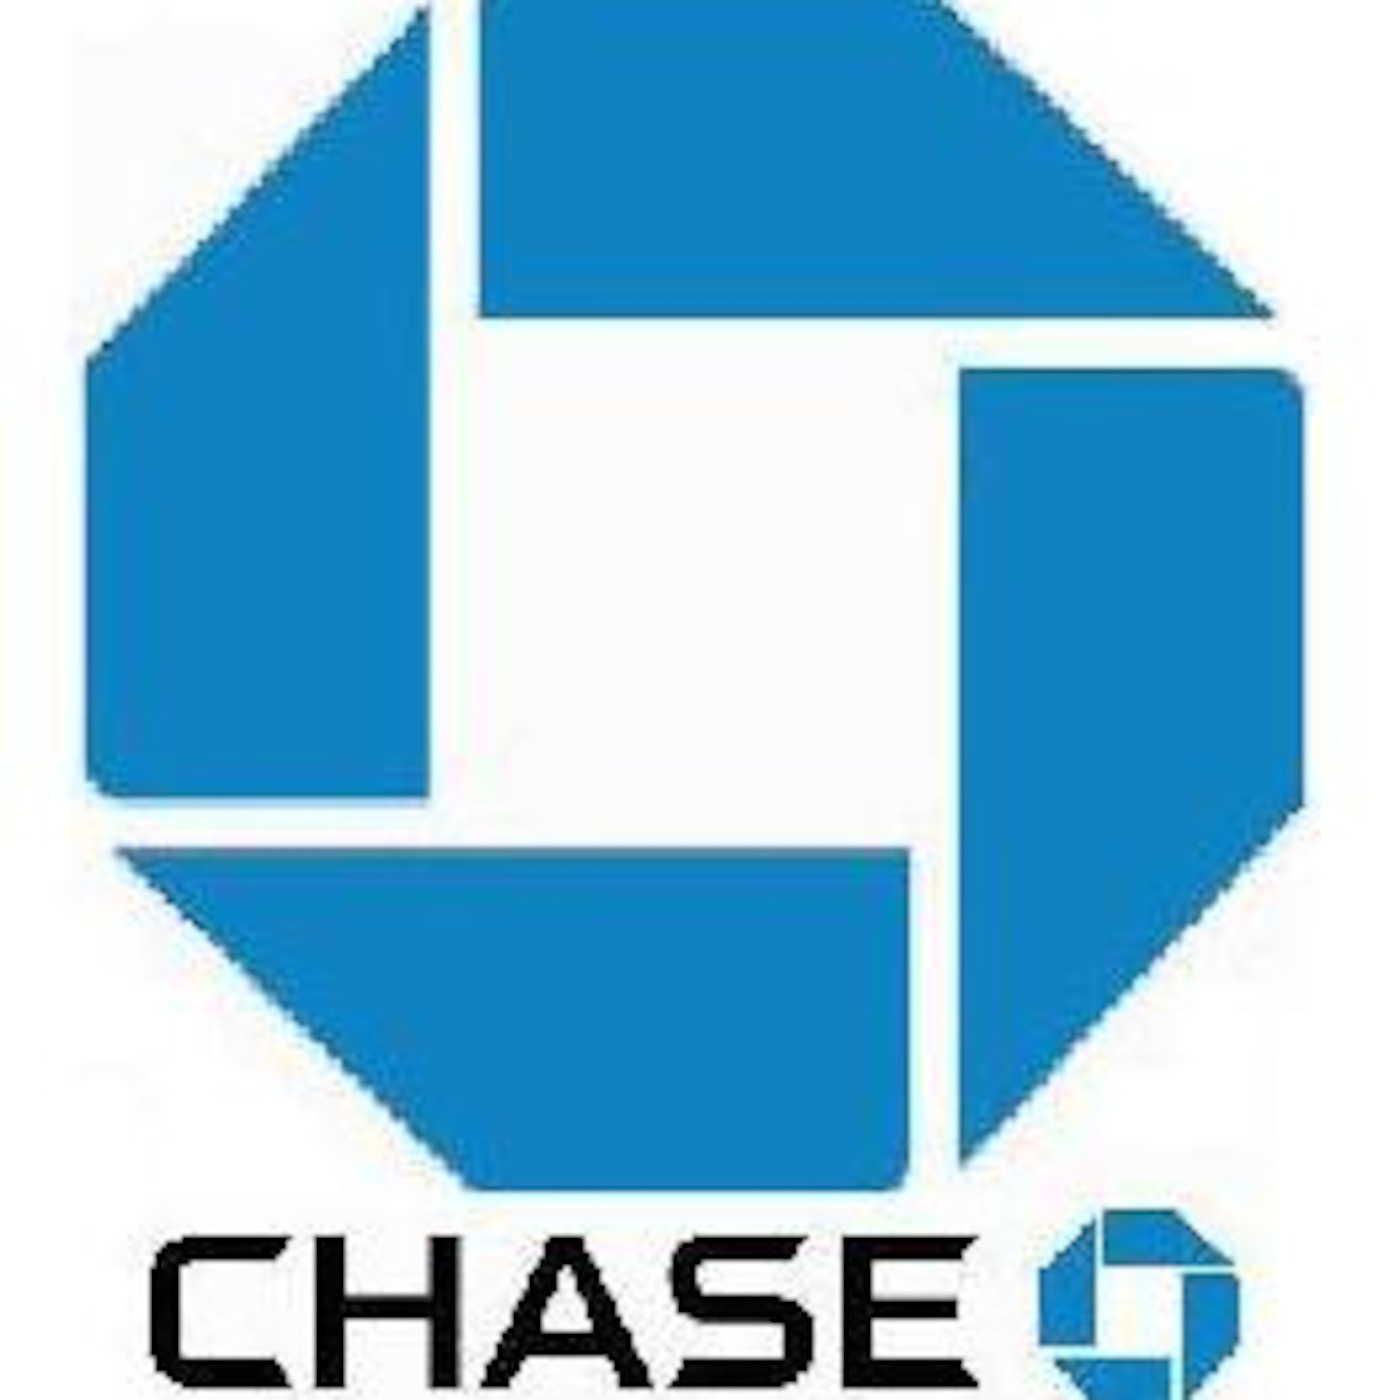 Chase bank clipart graphic stock Chase bank clipart - ClipartFest graphic stock